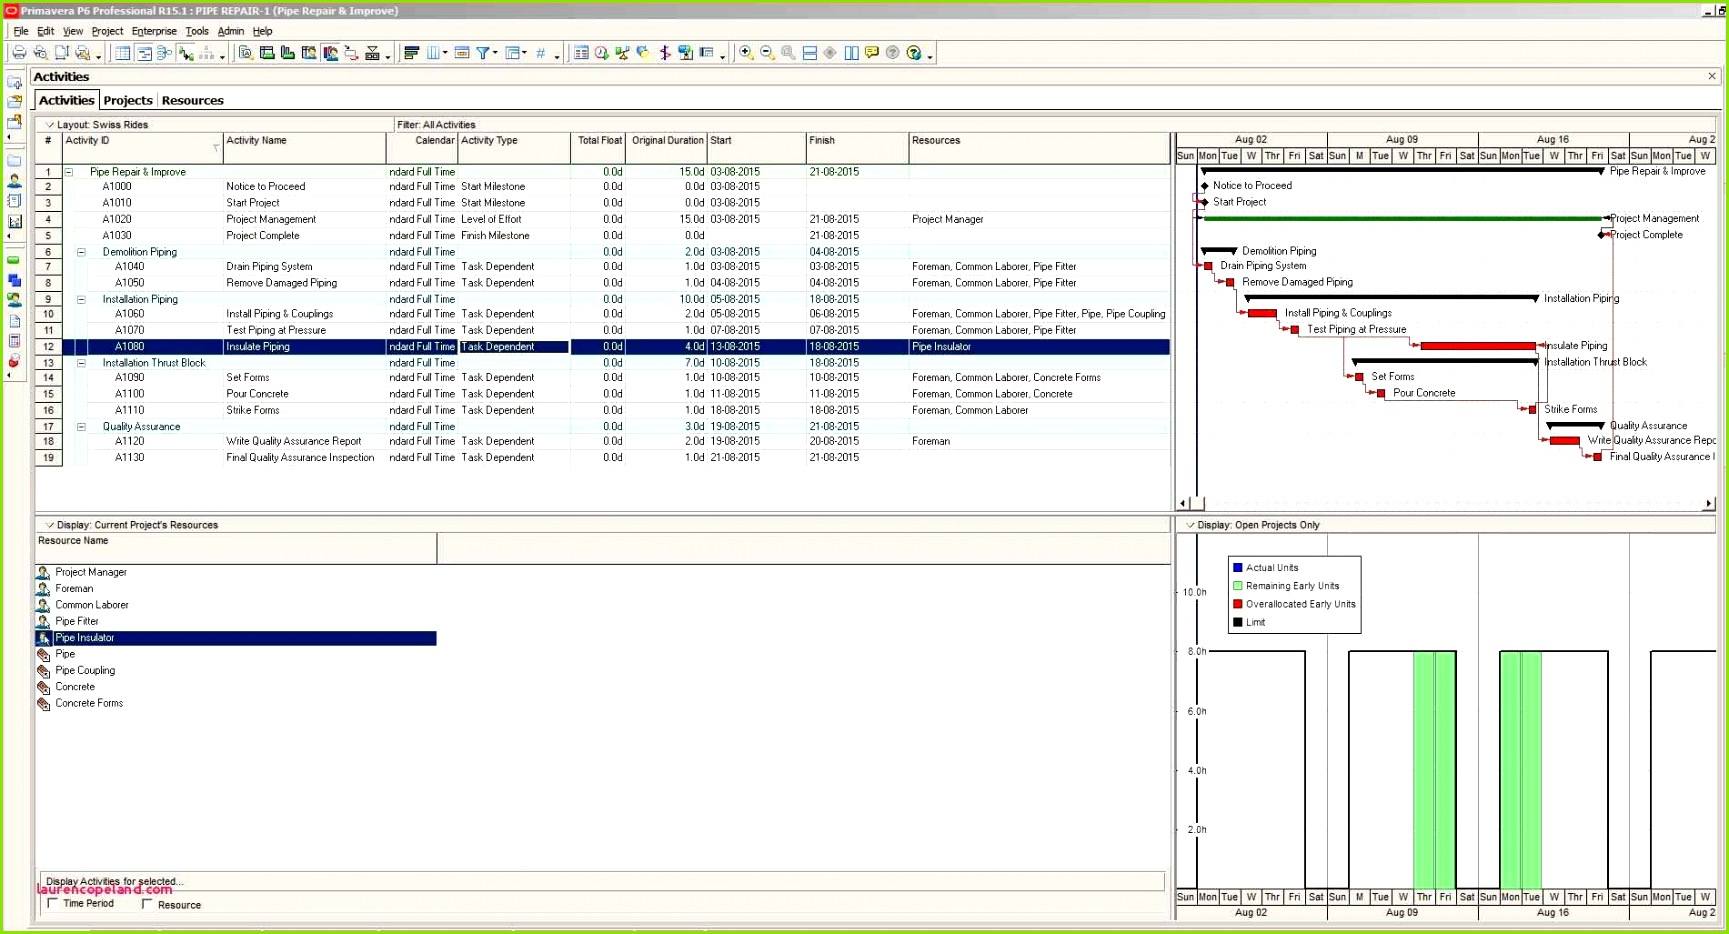 Excel Projekt Vorlage Project Management Wbs Template Excel and Work Breakdown Structure